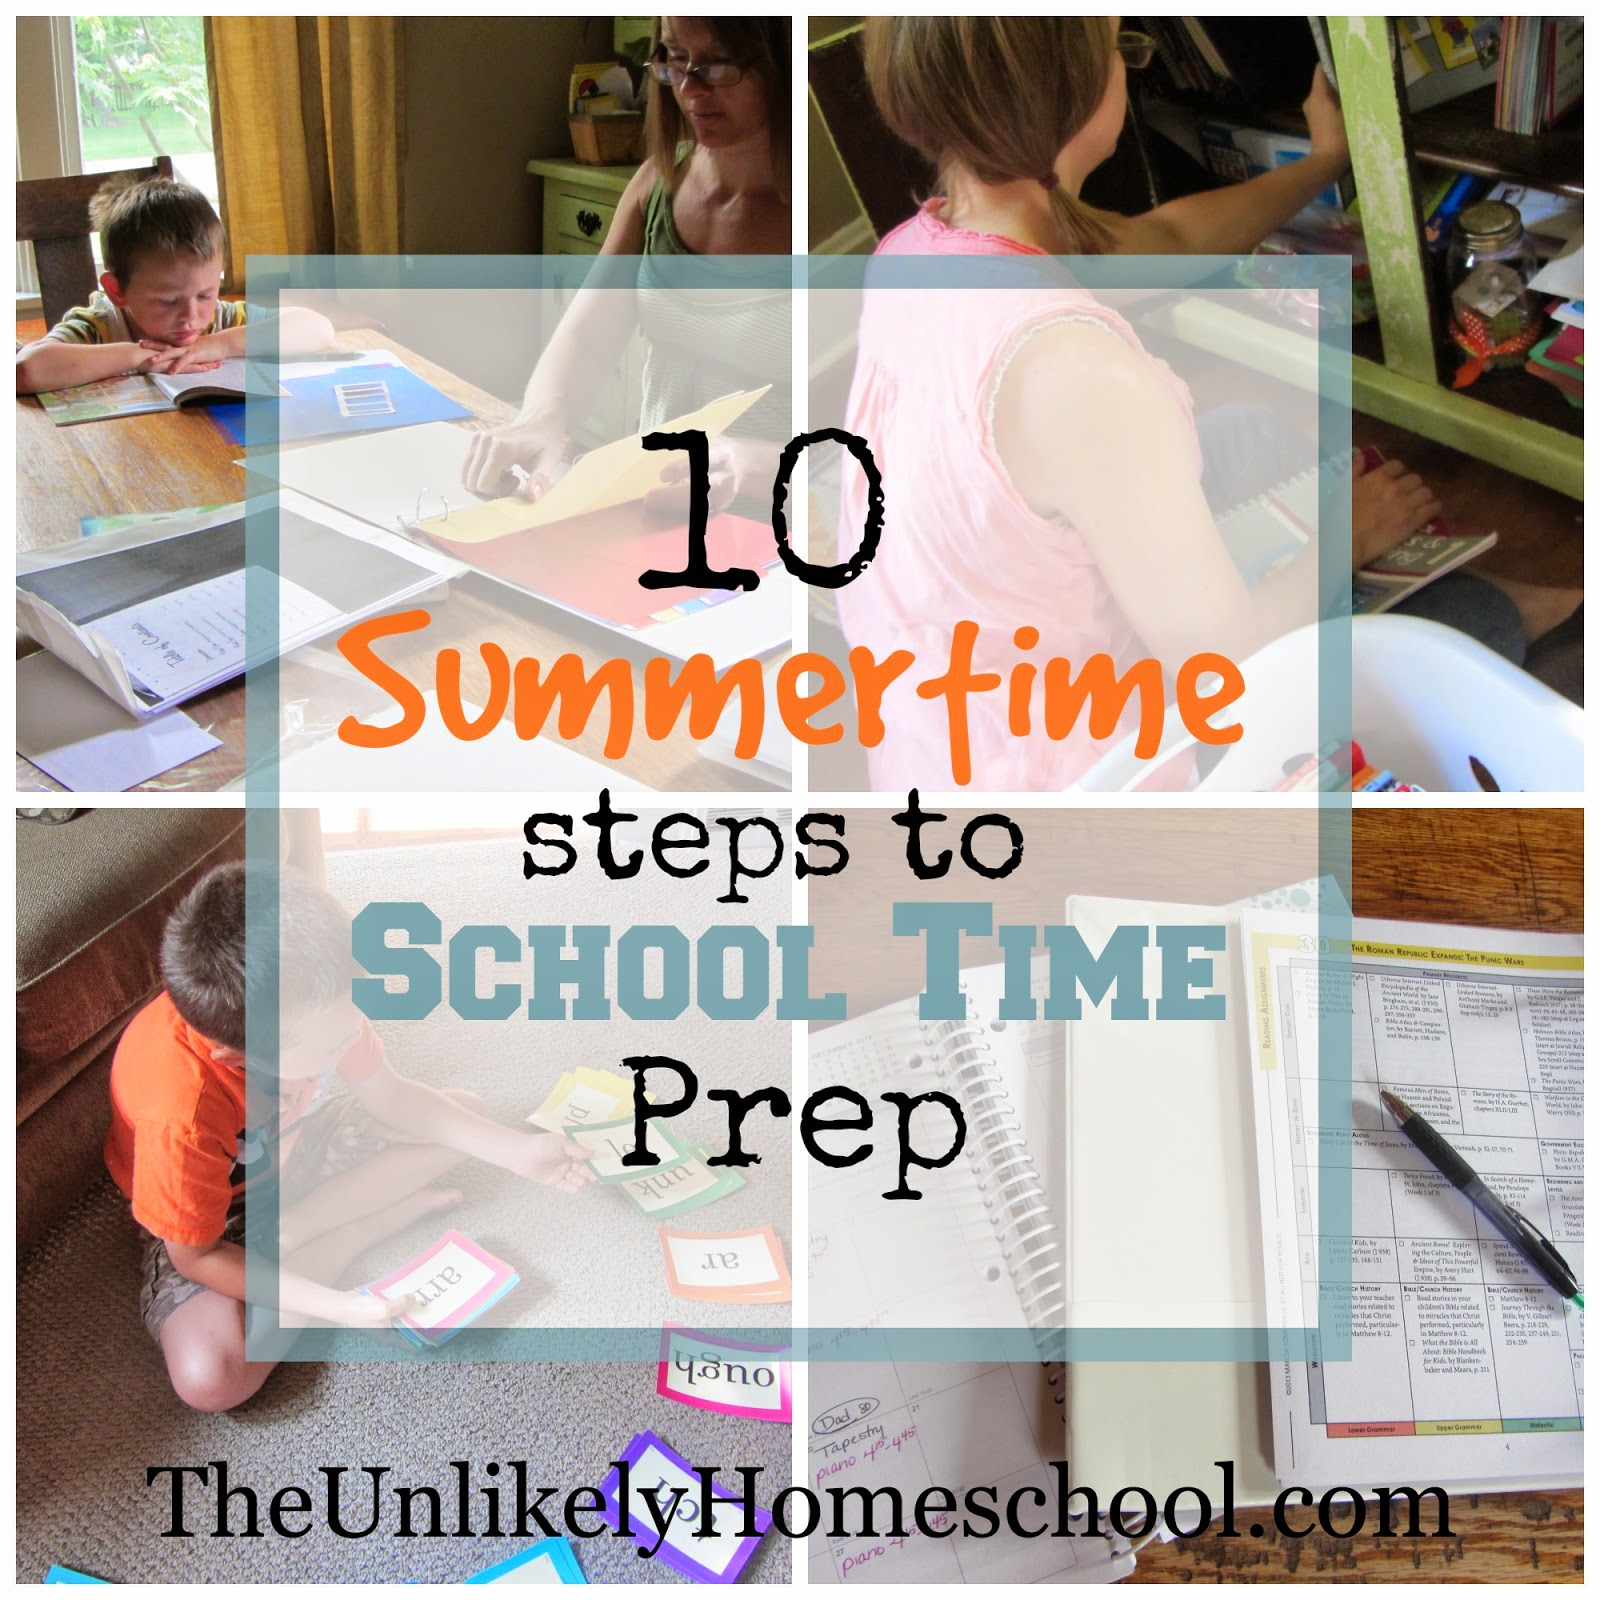 10 Summertime Steps to School Time Prep {The Unlikely Homeschool}